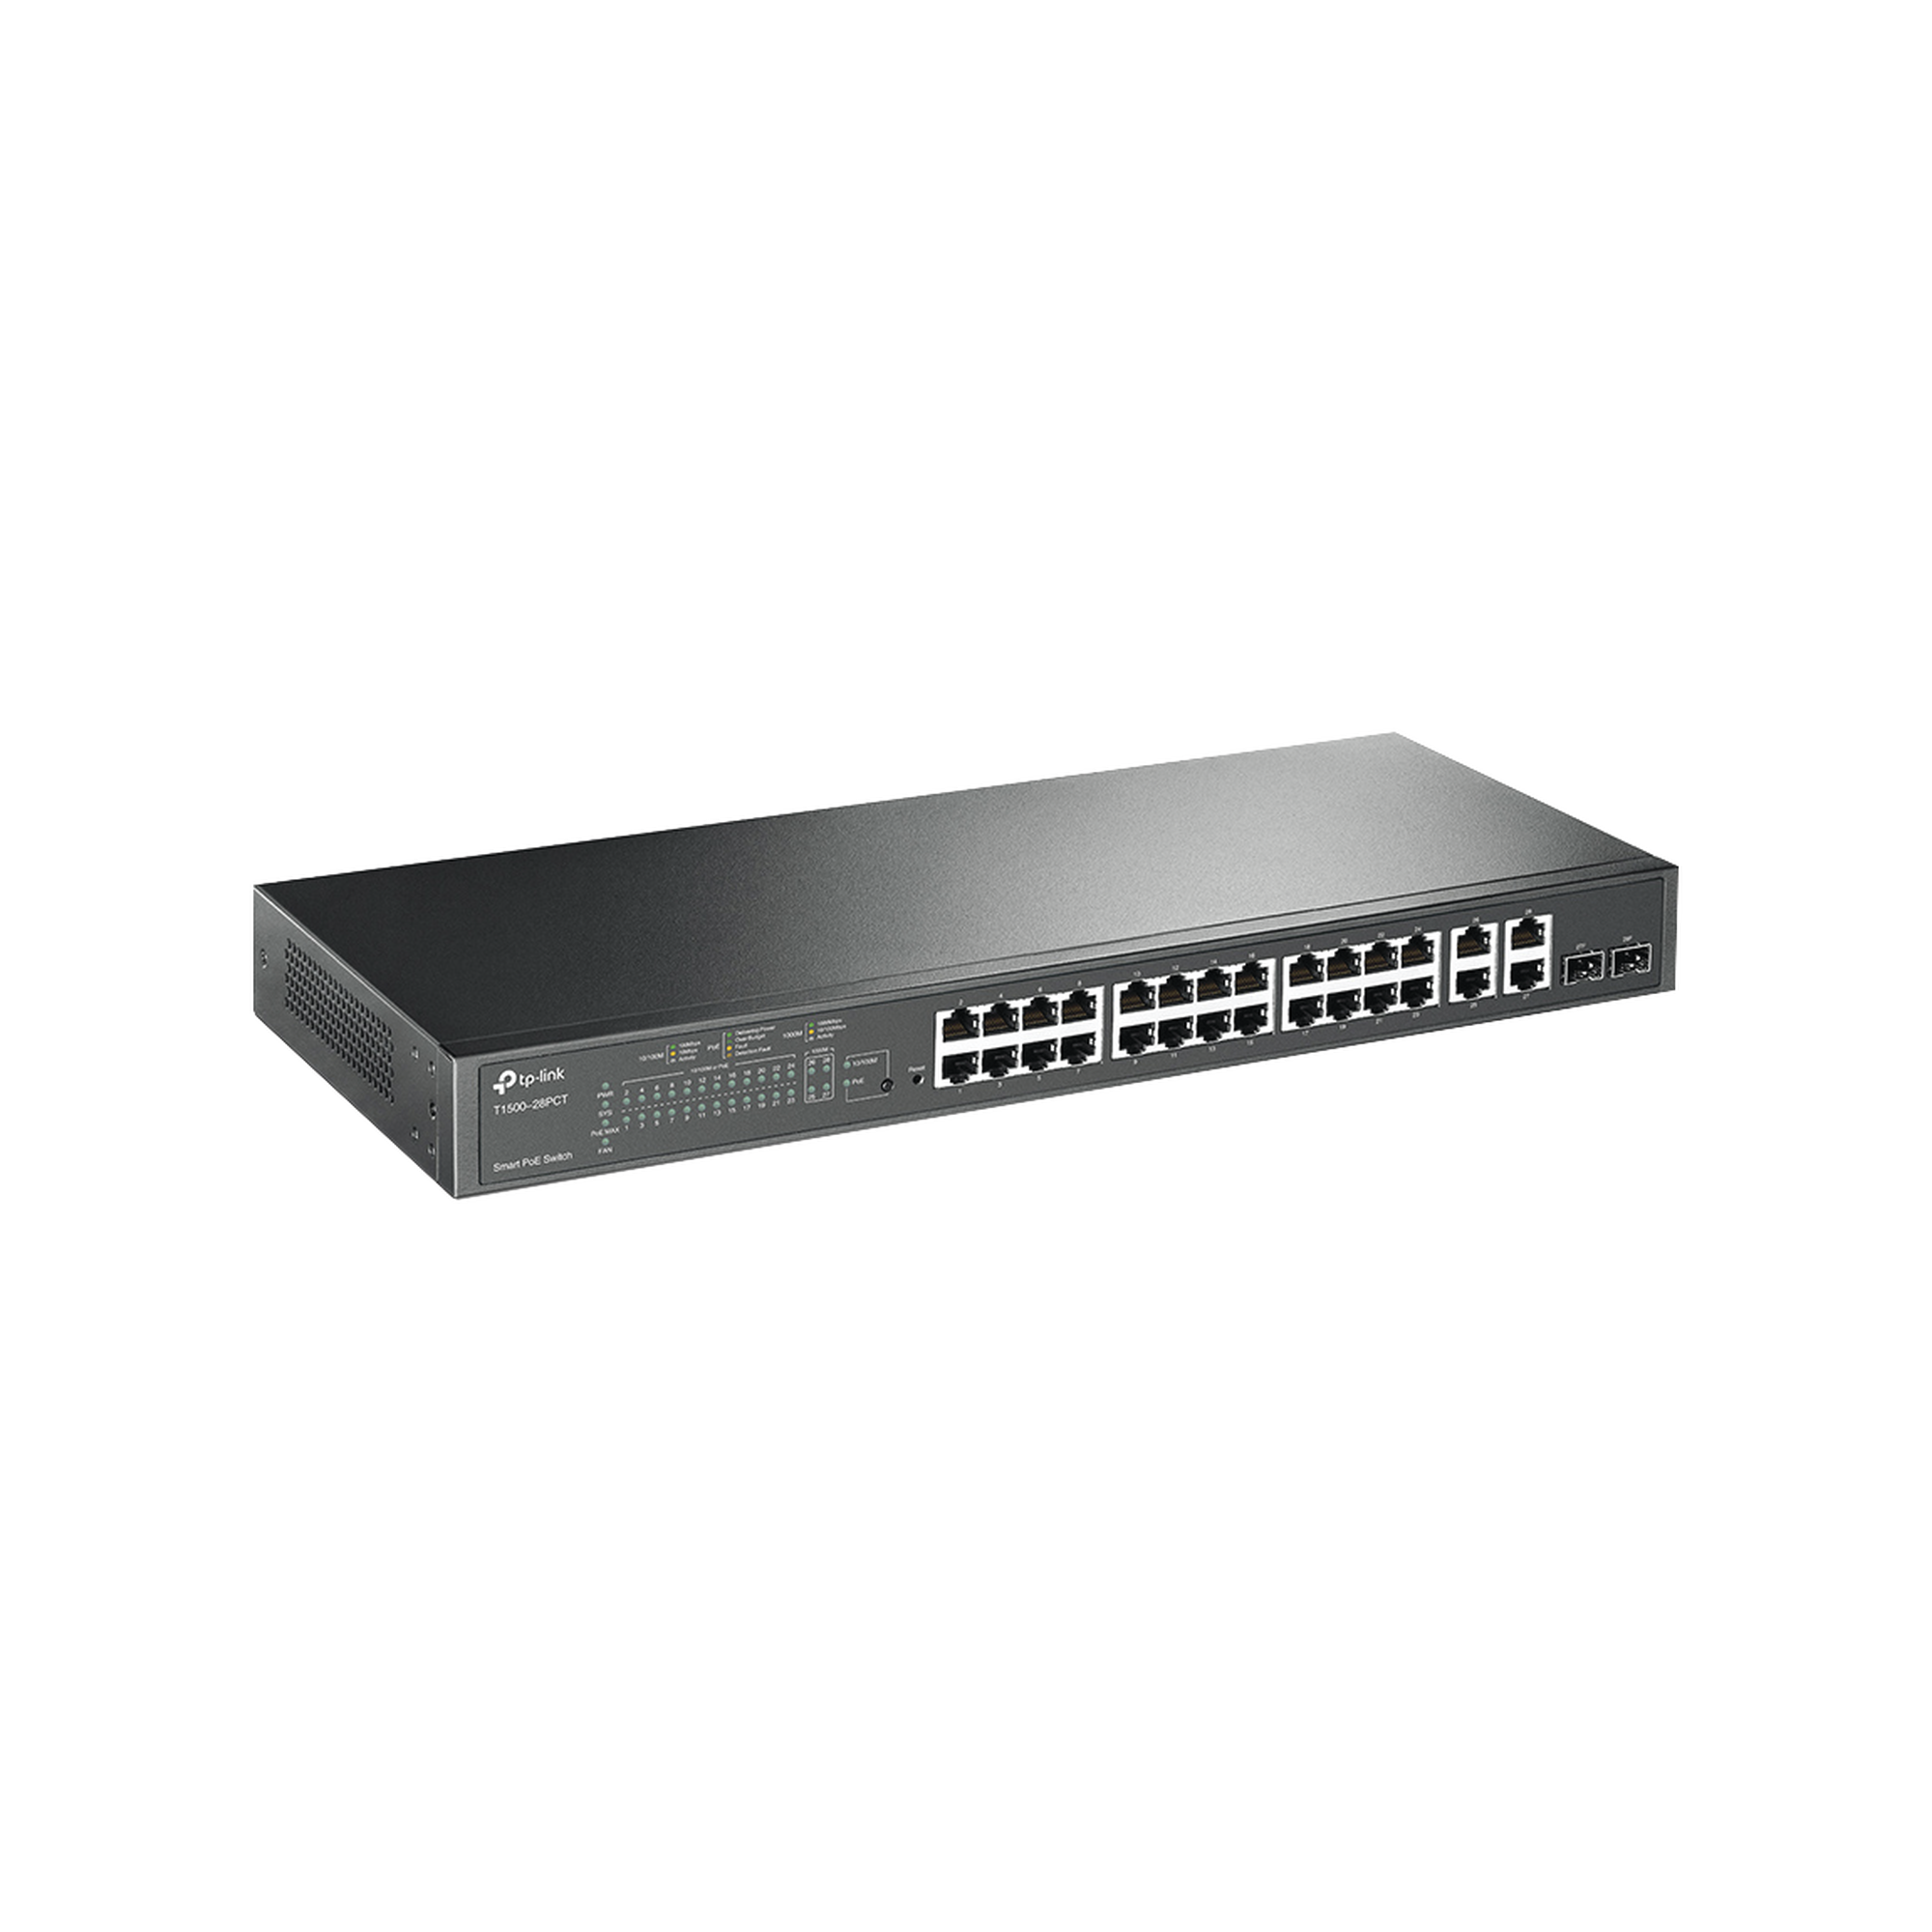 Smart Switch PoE+ administrable Capa 2, 24 puertos 10/100 Mbps, 4 puertos 10/100/1000 Mbps + 2 puertos SFP combo, 192 W